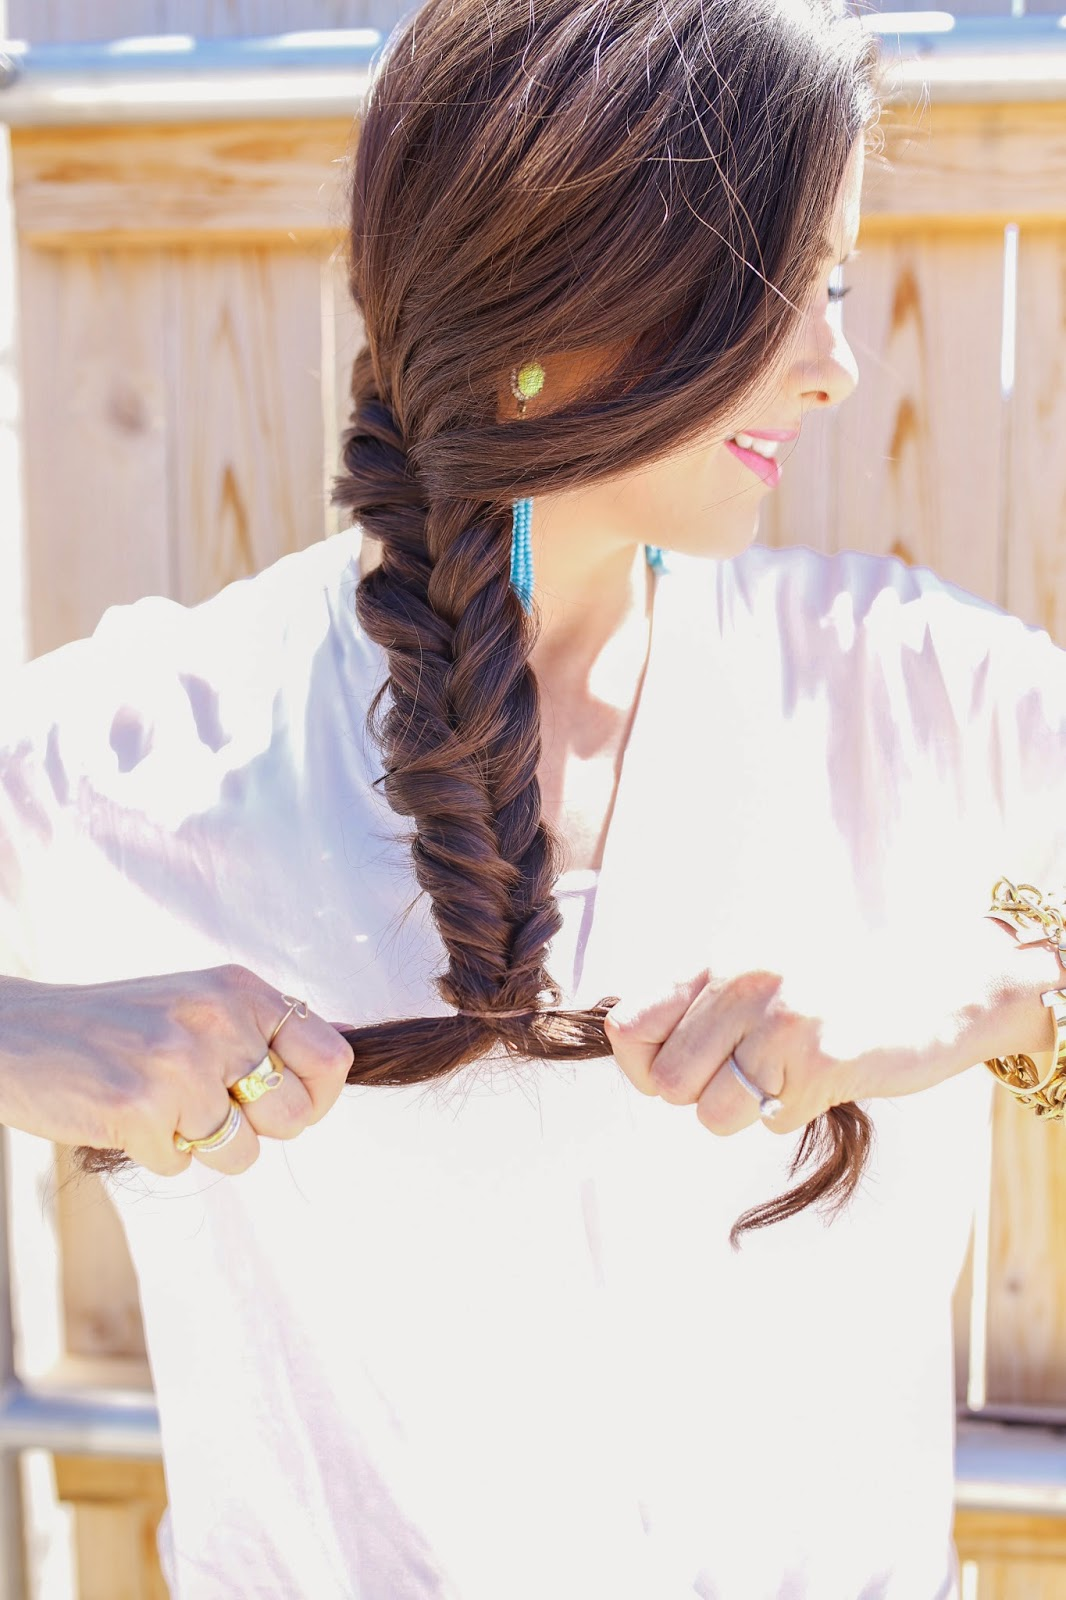 emily gemma hair, the sweetest thing hair, how to fishtail, messy fishtail braid, how to make a messy fishtail, bauble bar, turquoise tassel earrings, delyn evolve sessions, miles witt boyer, beauty blog, hair tutorials with braids